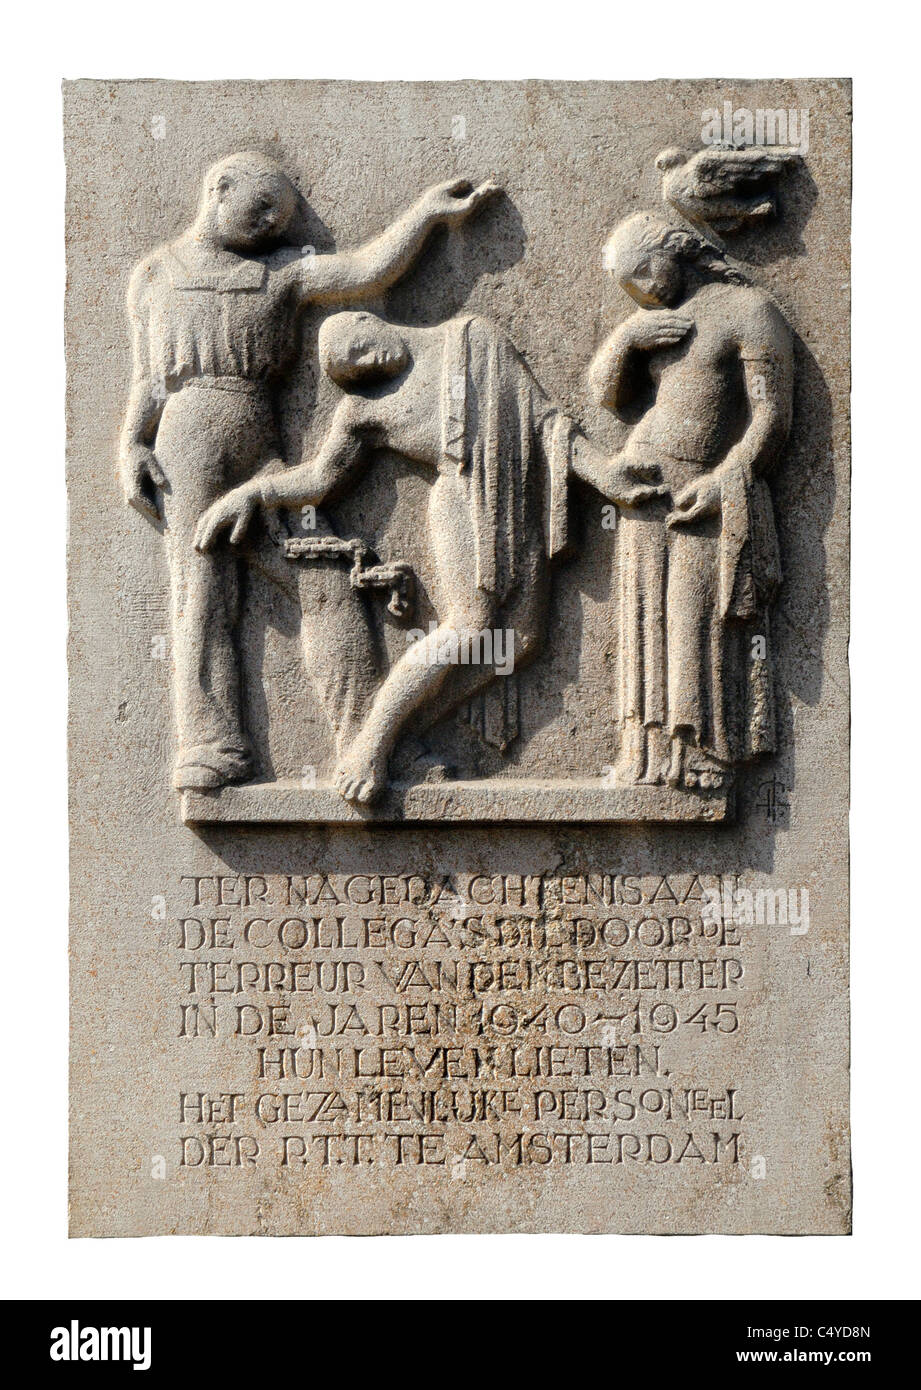 Amsterdam, Netherlands. Memorial on wall of post office on Voorburgwal commemorating colleagues who died in WW2 - Stock Image